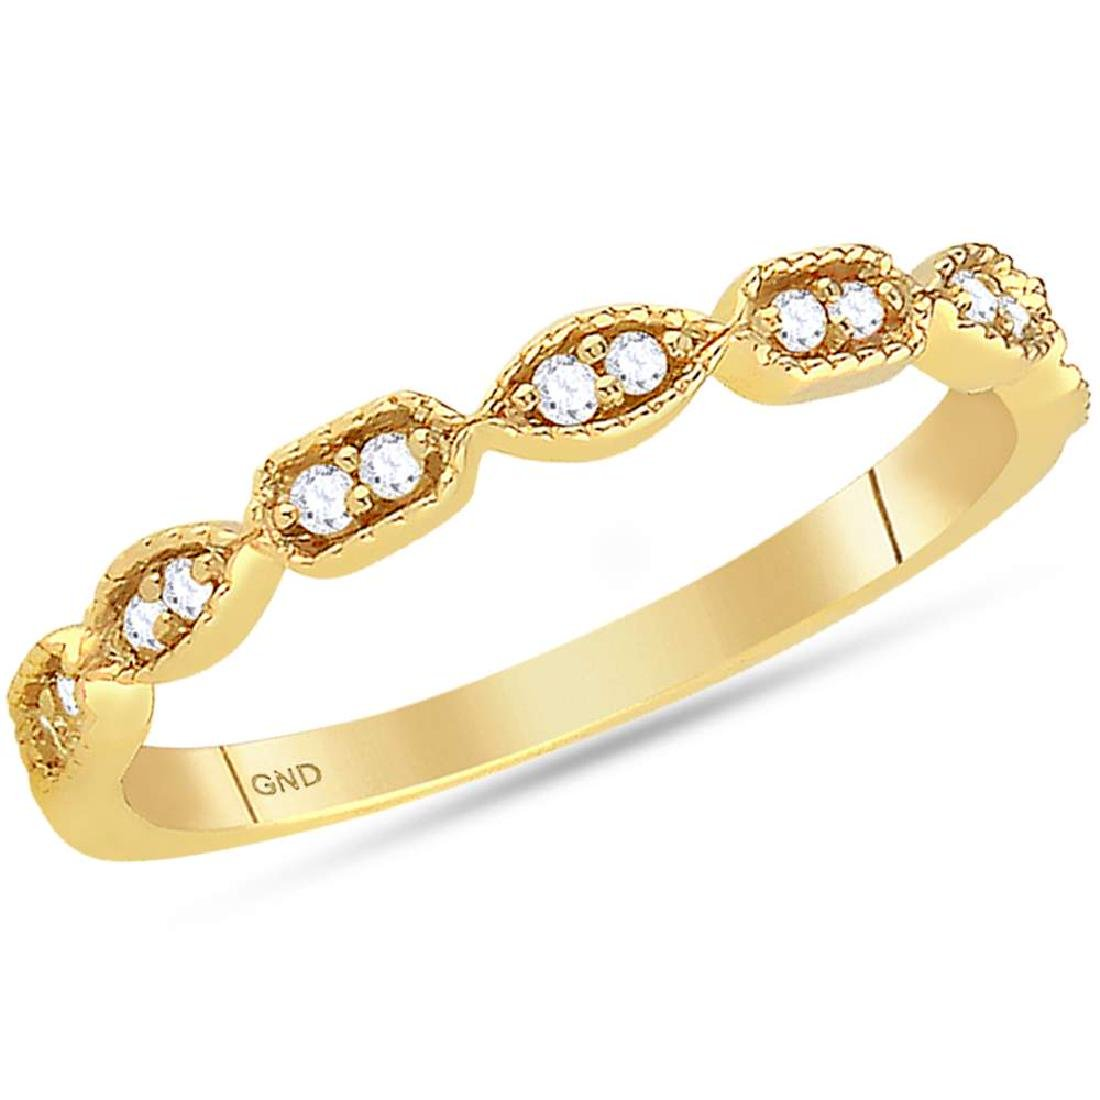 0.10 CTW Diamond Stackable Ring 14KT Yellow Gold -